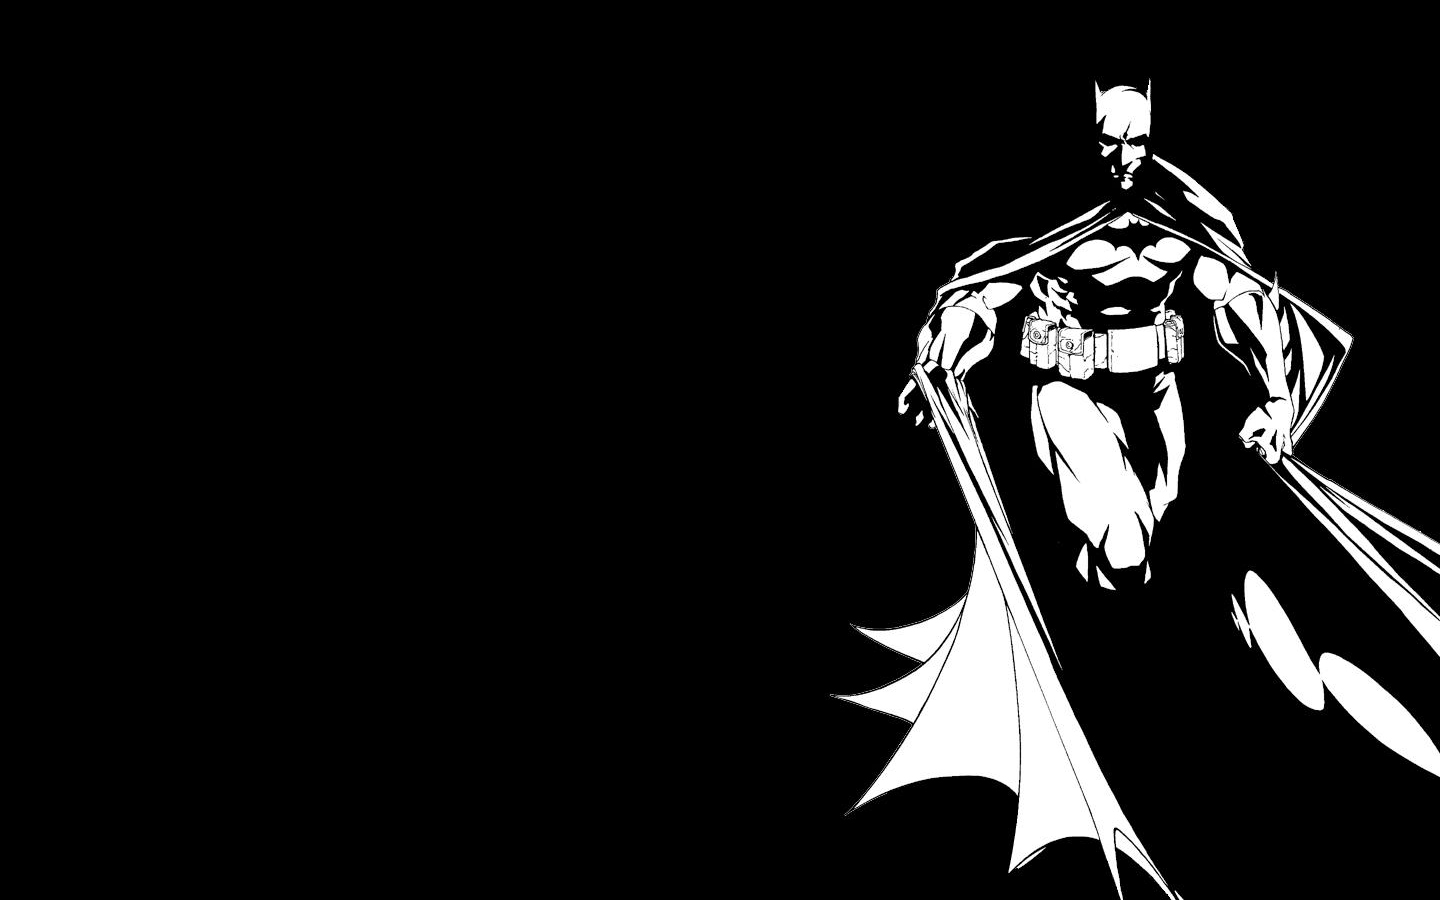 Batman HD Wallpapers for Desktop 24 1440x900